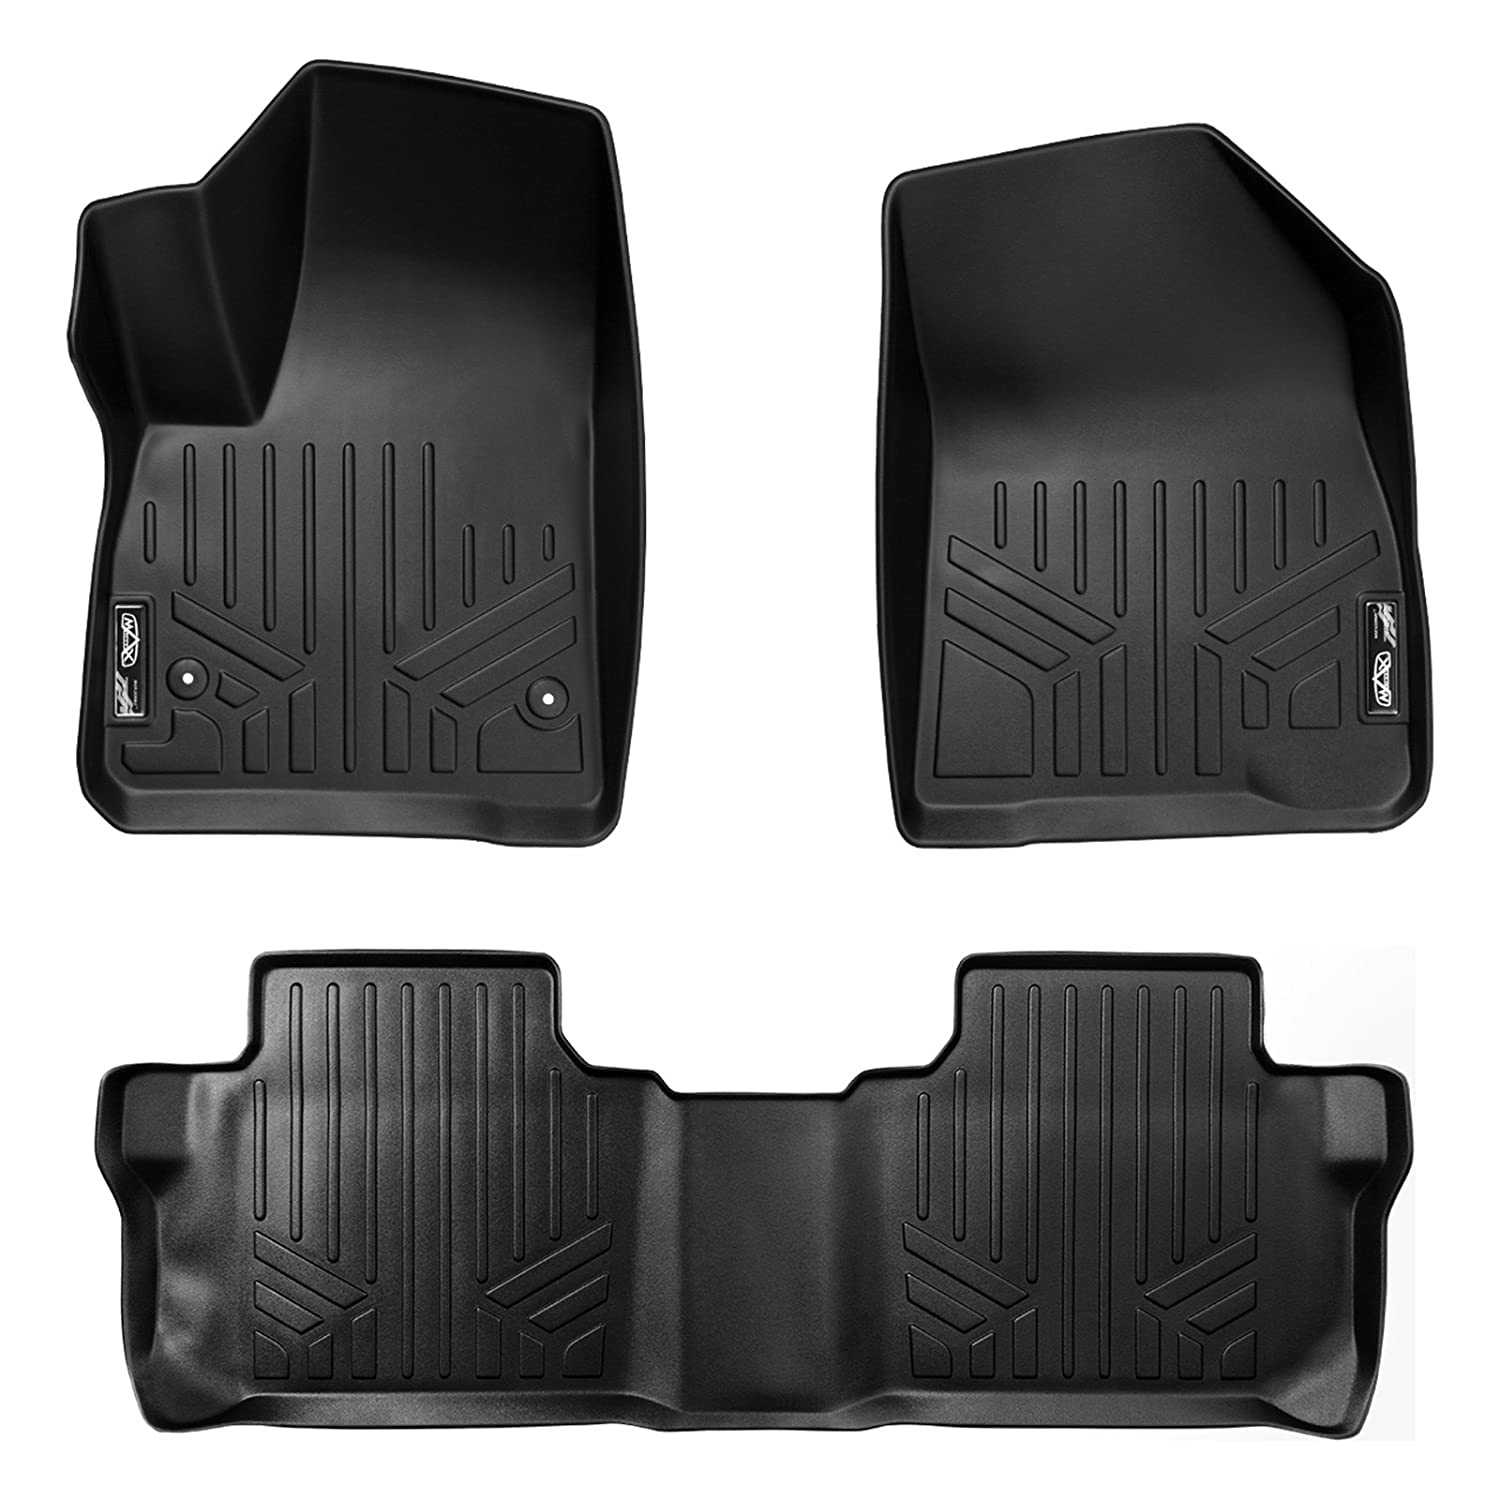 Swell Max Liner A0230 B0248 Custom Fit Floor Mats 2 Liner Set Black For 2017 2019 Gmc Acadia With 2Nd Row Bench Seat Short Links Chair Design For Home Short Linksinfo